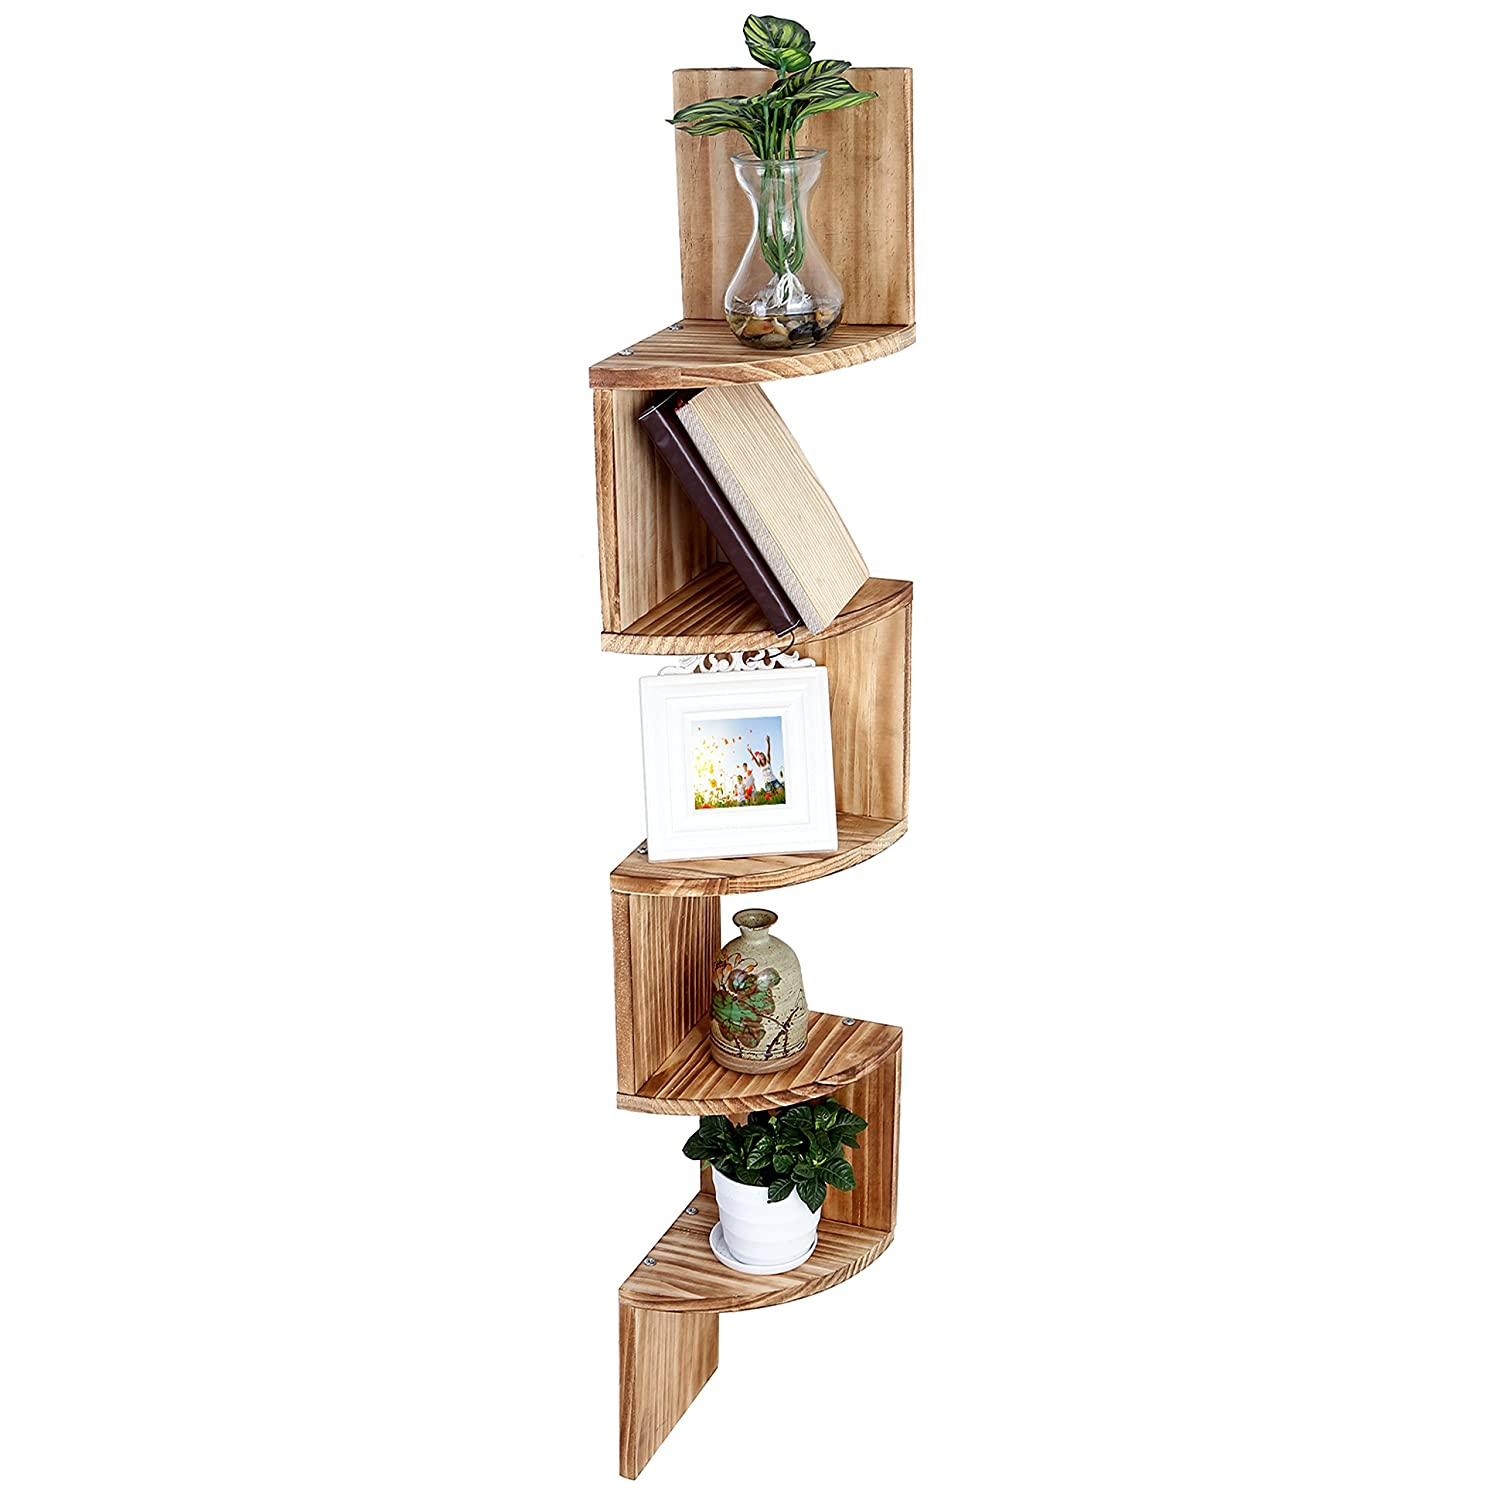 Wall Mount Wood Corner Shelves, 5 Tier Storage Display Rack, Brown MyGift TB-HOM1118BRN